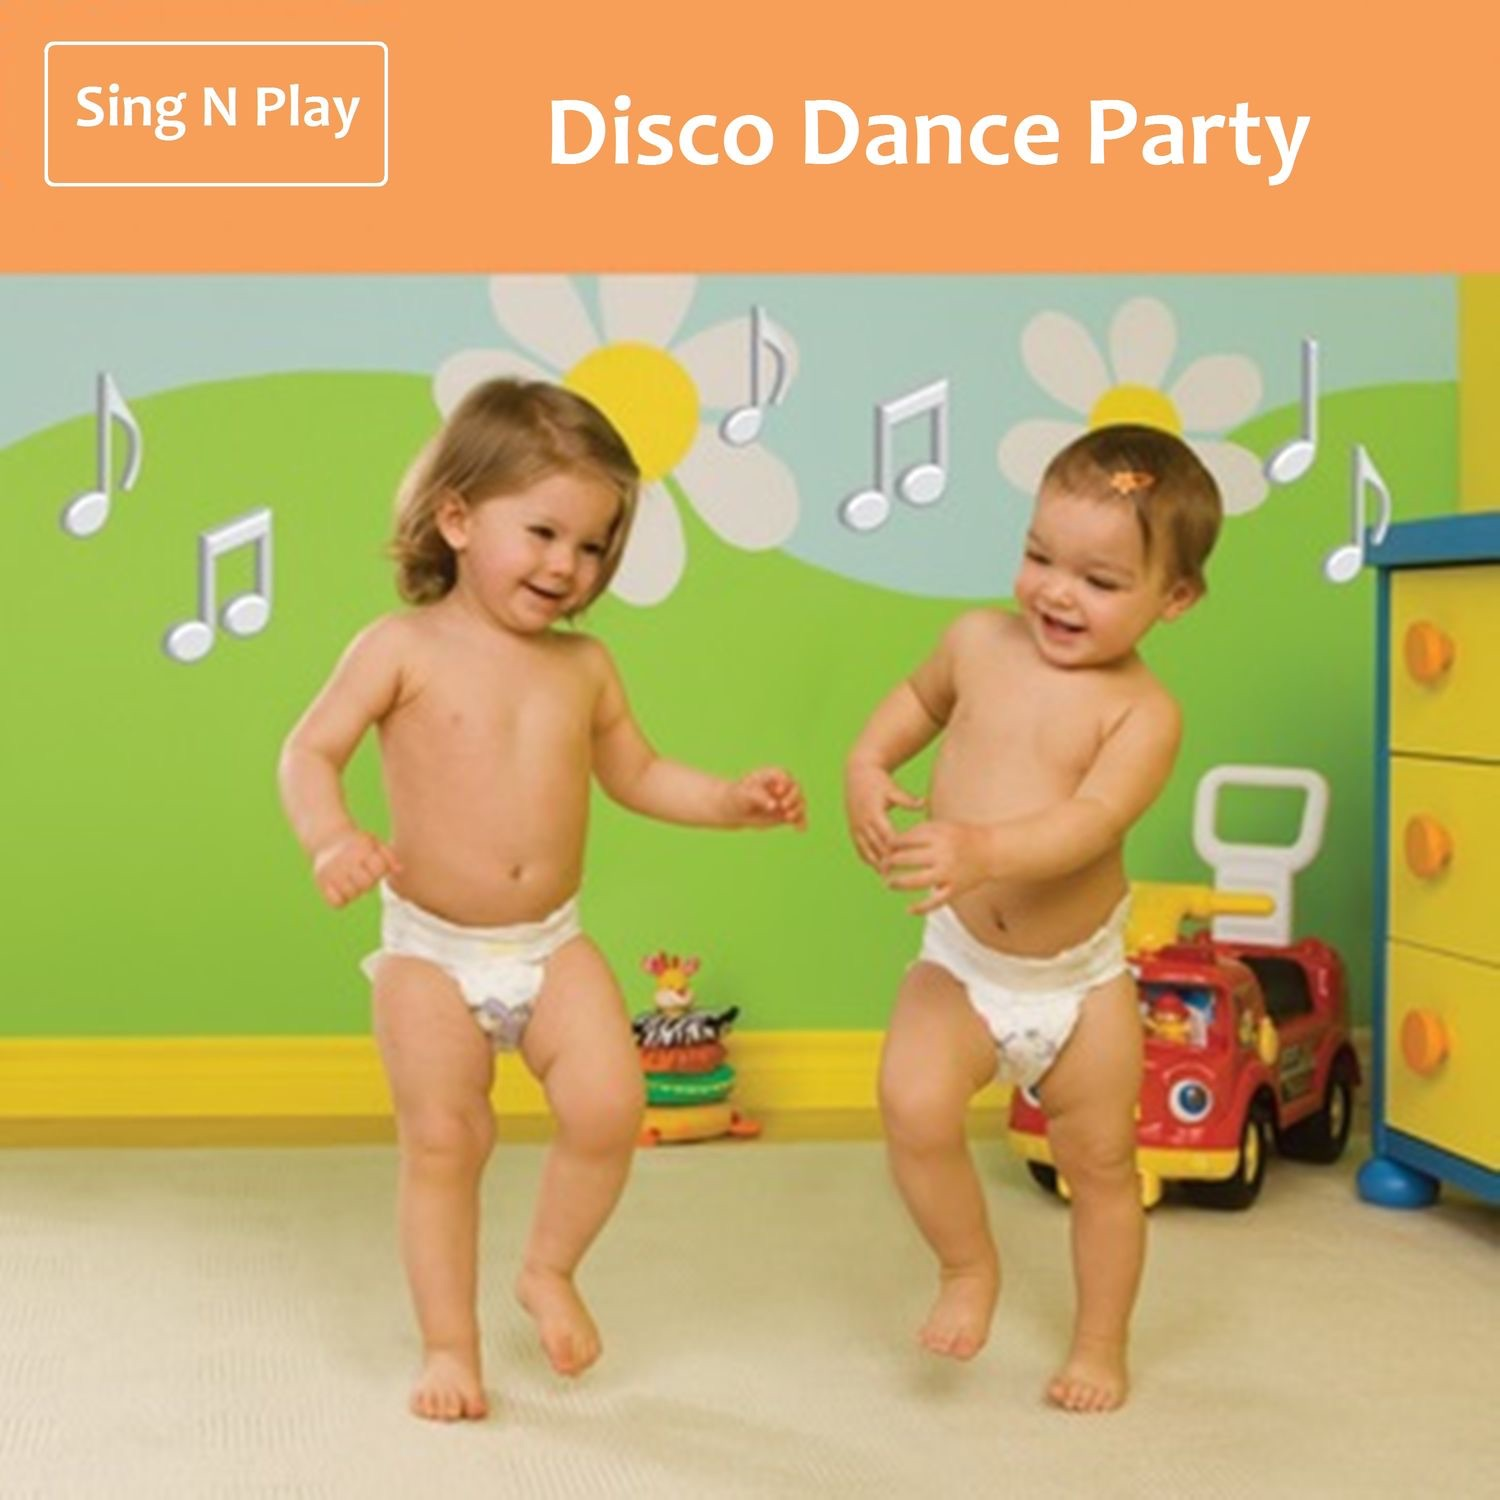 Disco Dance Party